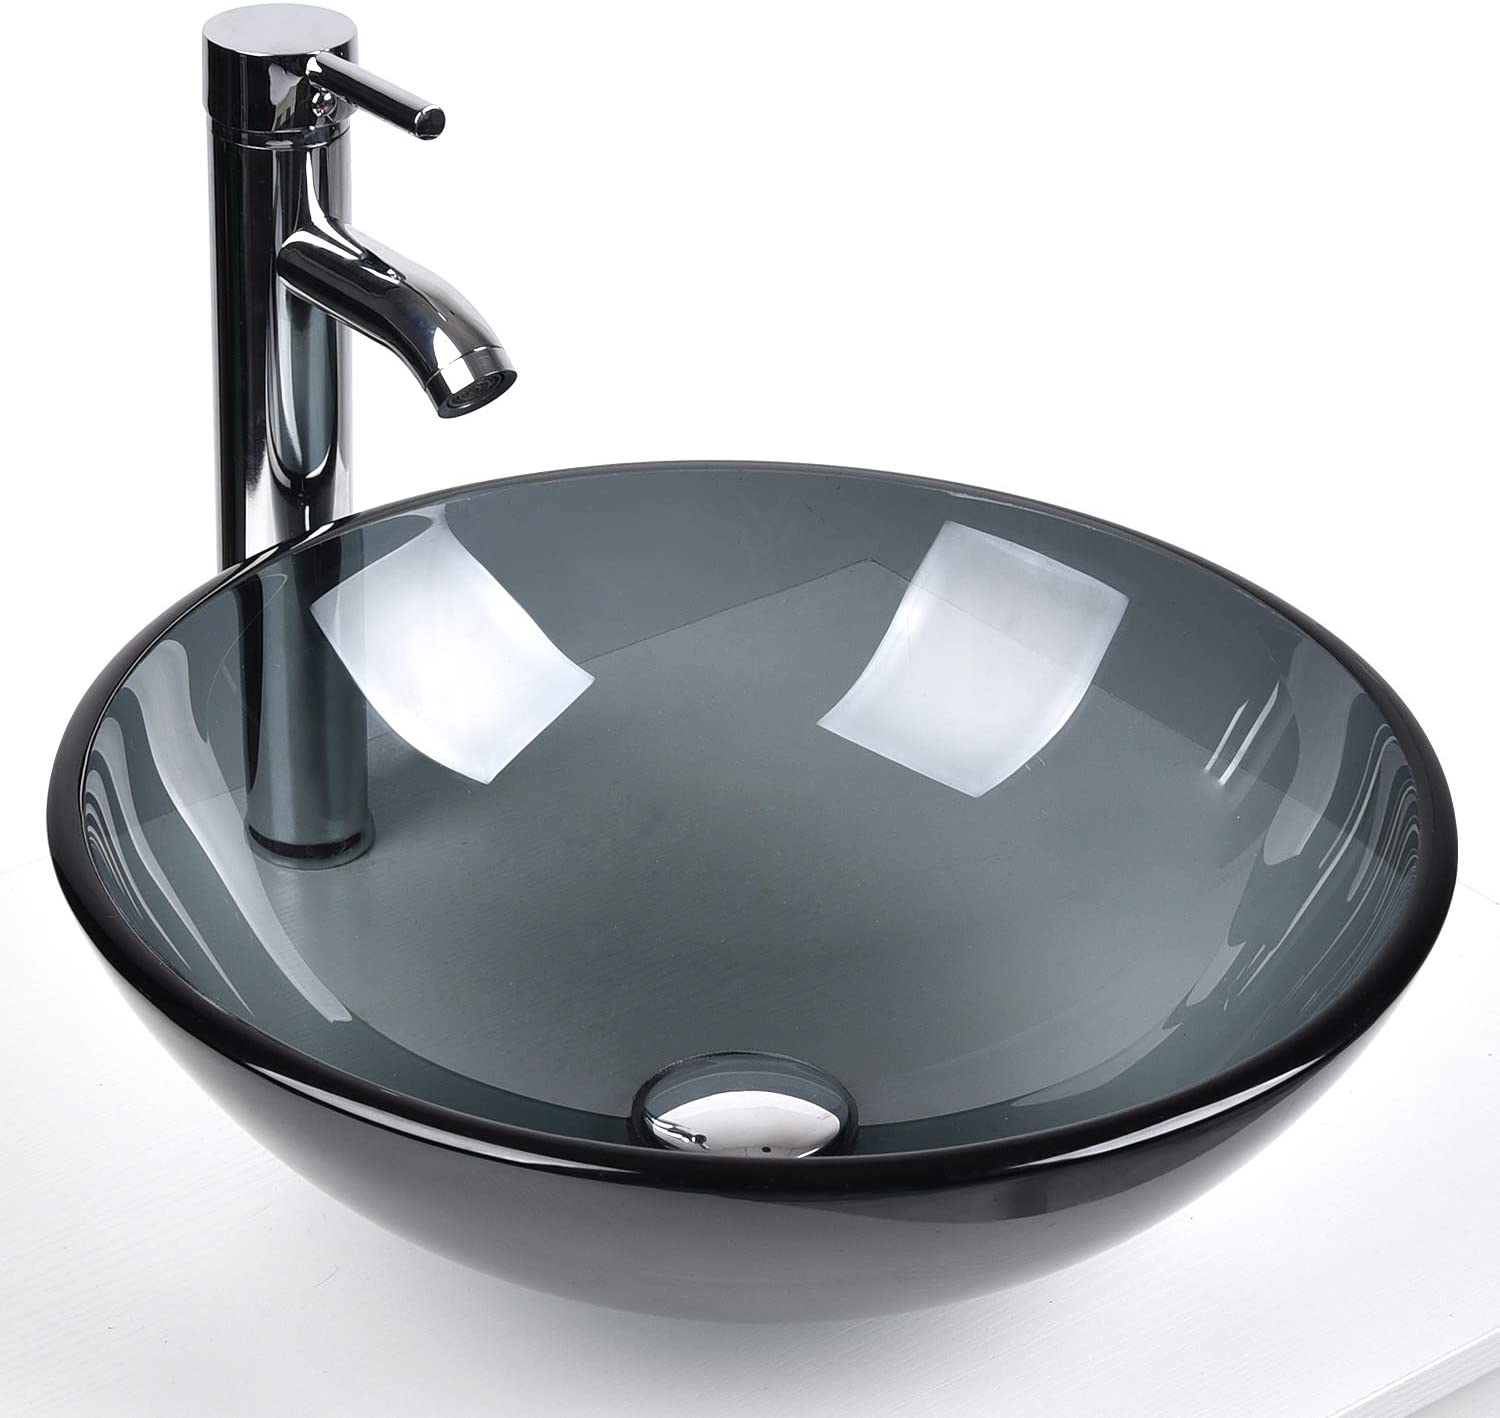 Bathroom Round Glass Vessel Sink Basin With Faucet Pop Up Drain Bluish Grey Crystal Amazon Co Uk Diy Tools